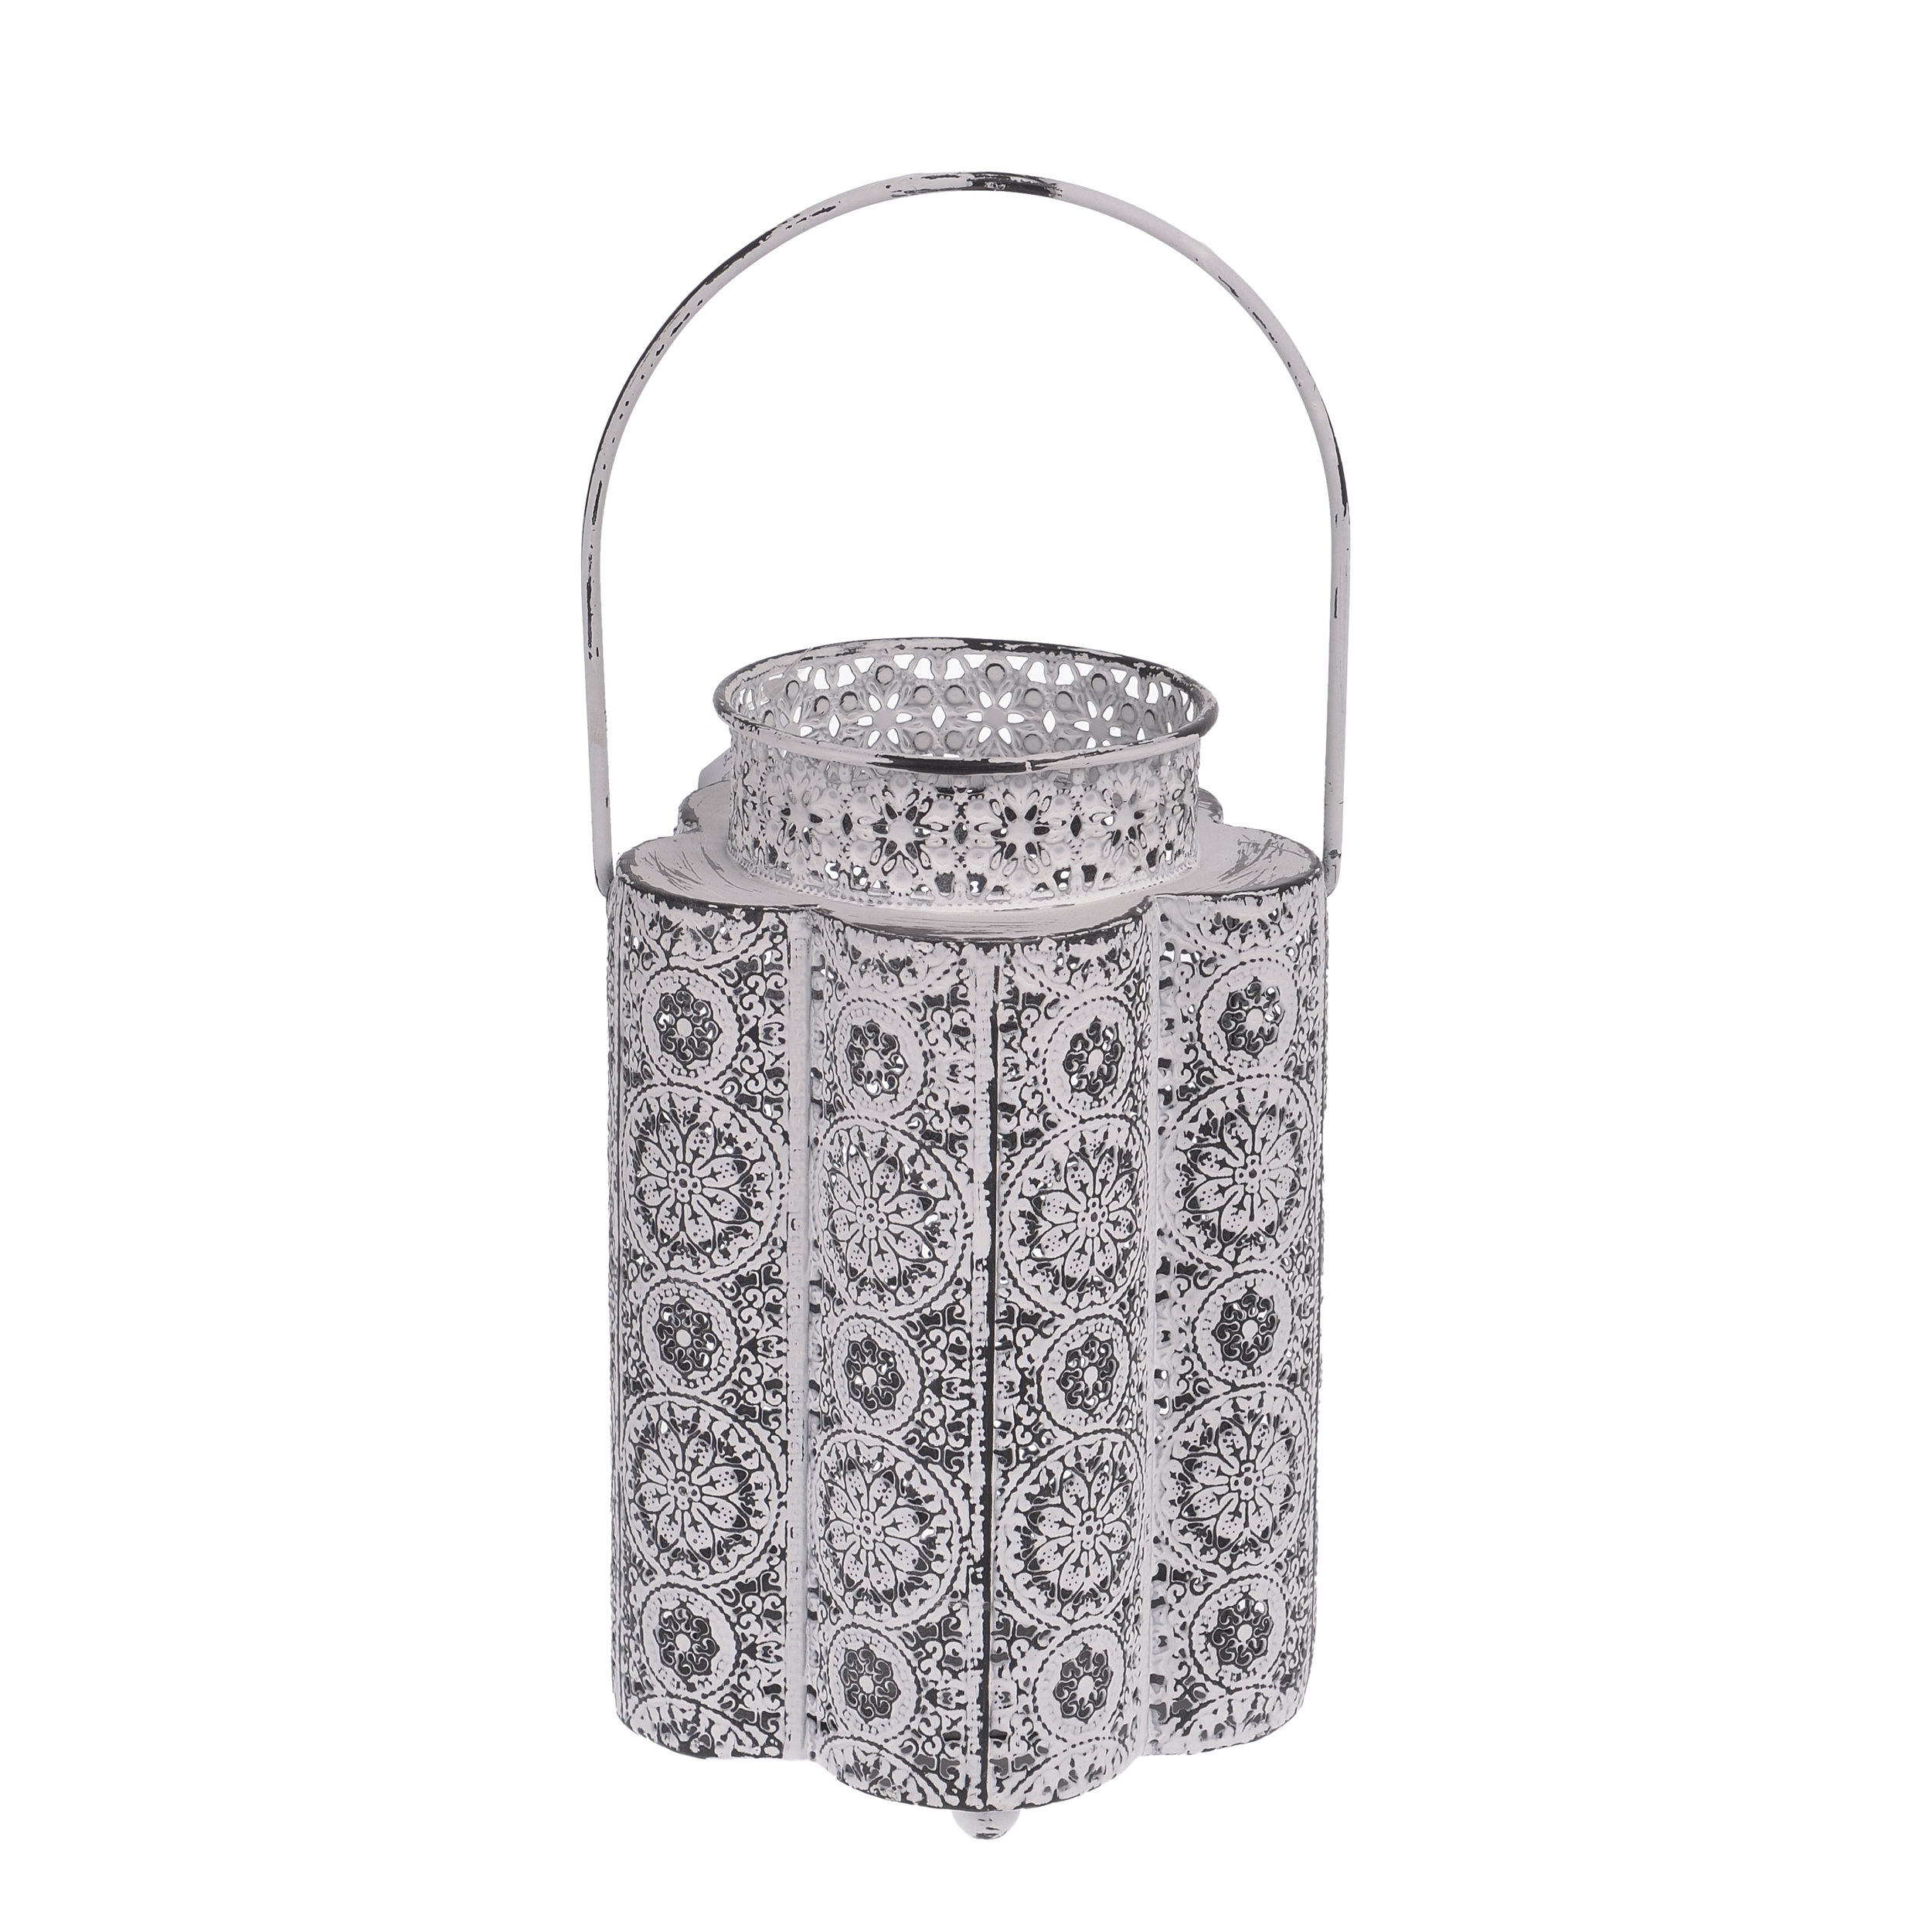 €34 METAL LANTERN IN WHITE COLOR 14Χ14Χ22